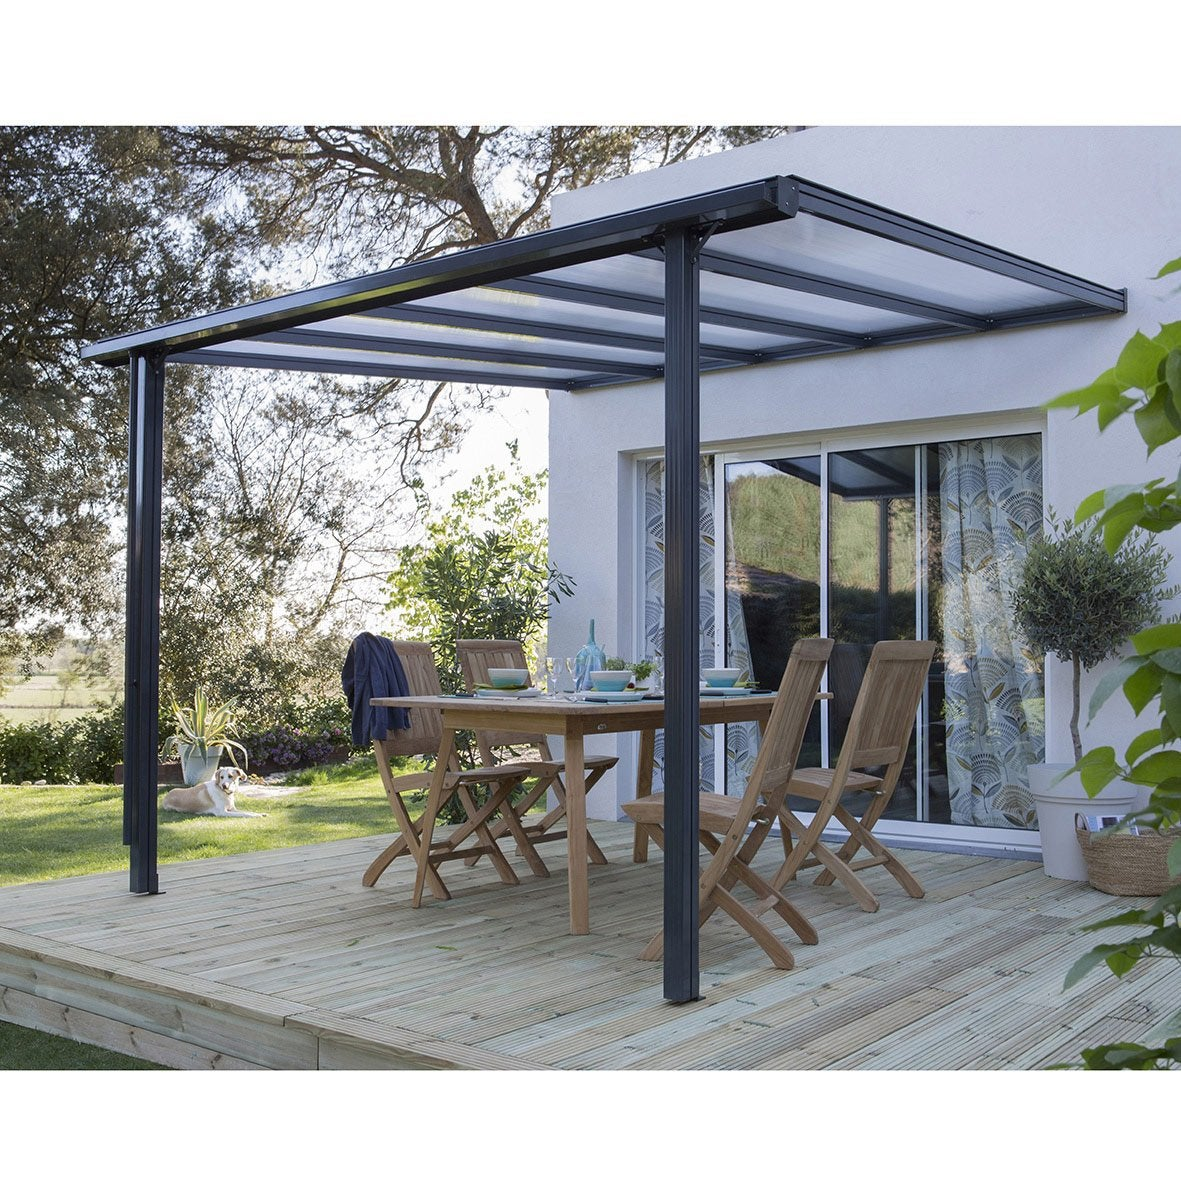 Couverture de terrasse adoss e tradition aluminium gris m leroy merlin - Abri de terrasse retractable ...